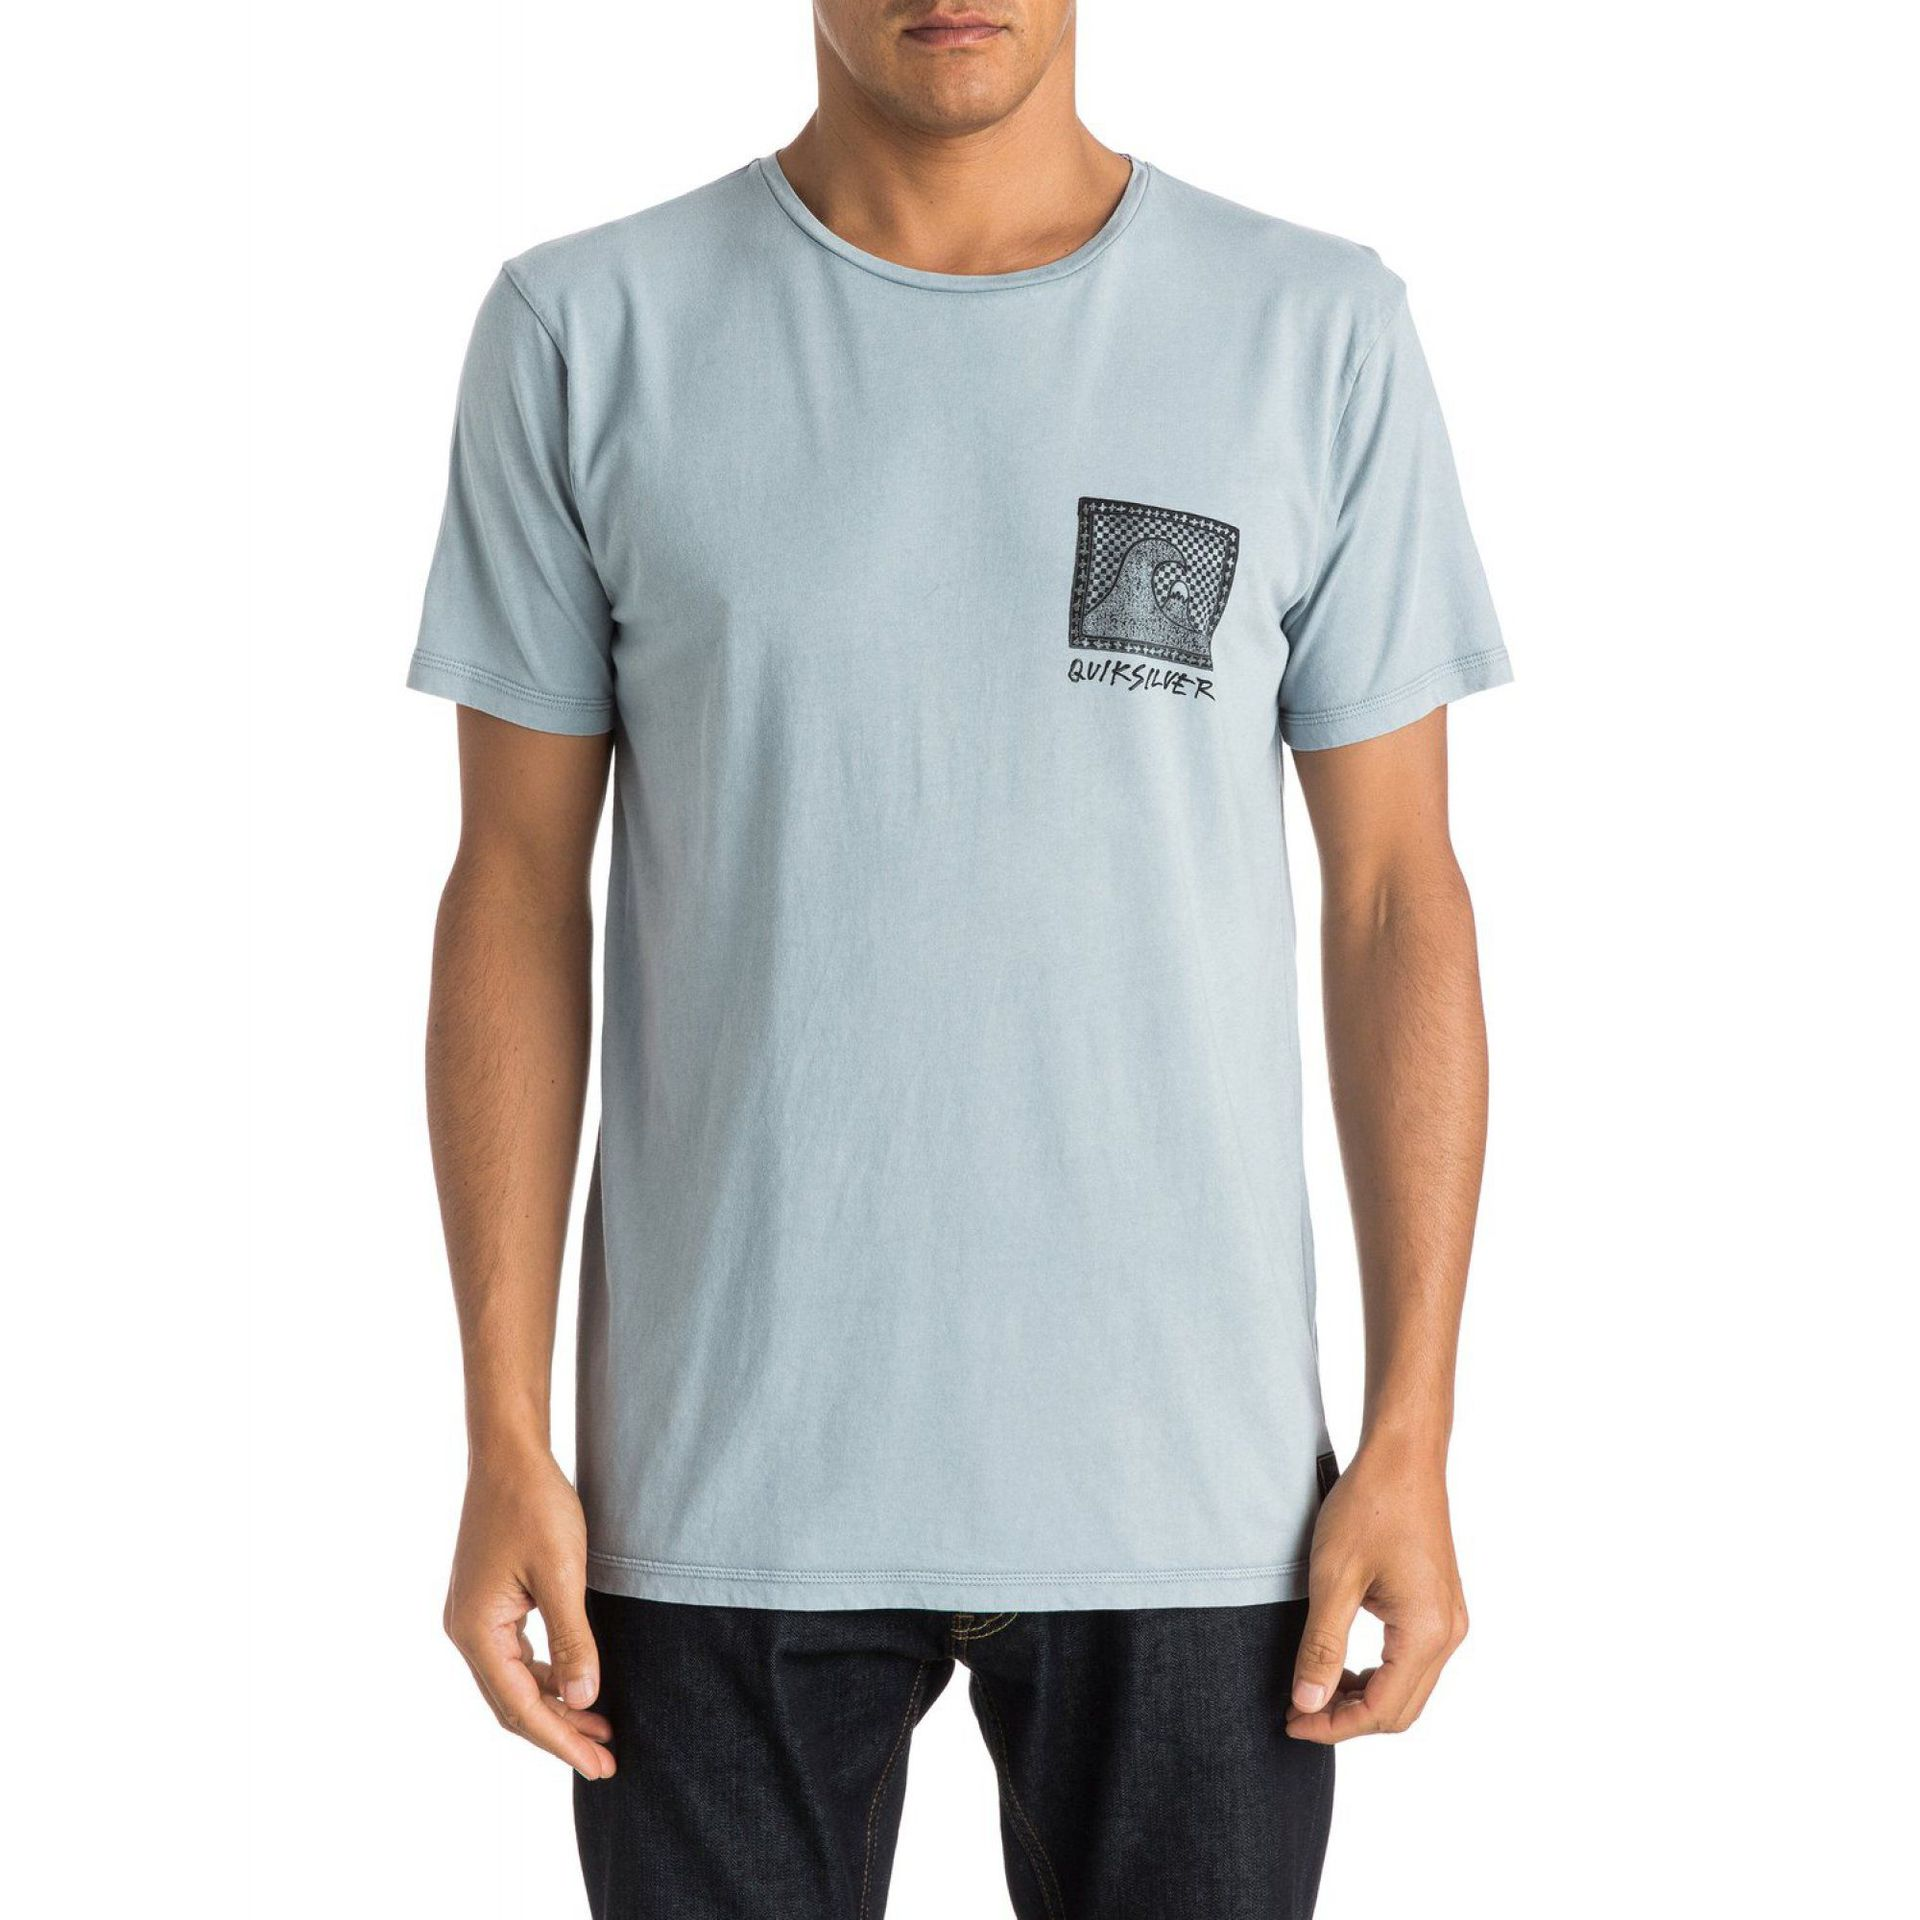 T-SHIRT QUIKSILVER CHECKERED PAST SS SNA0